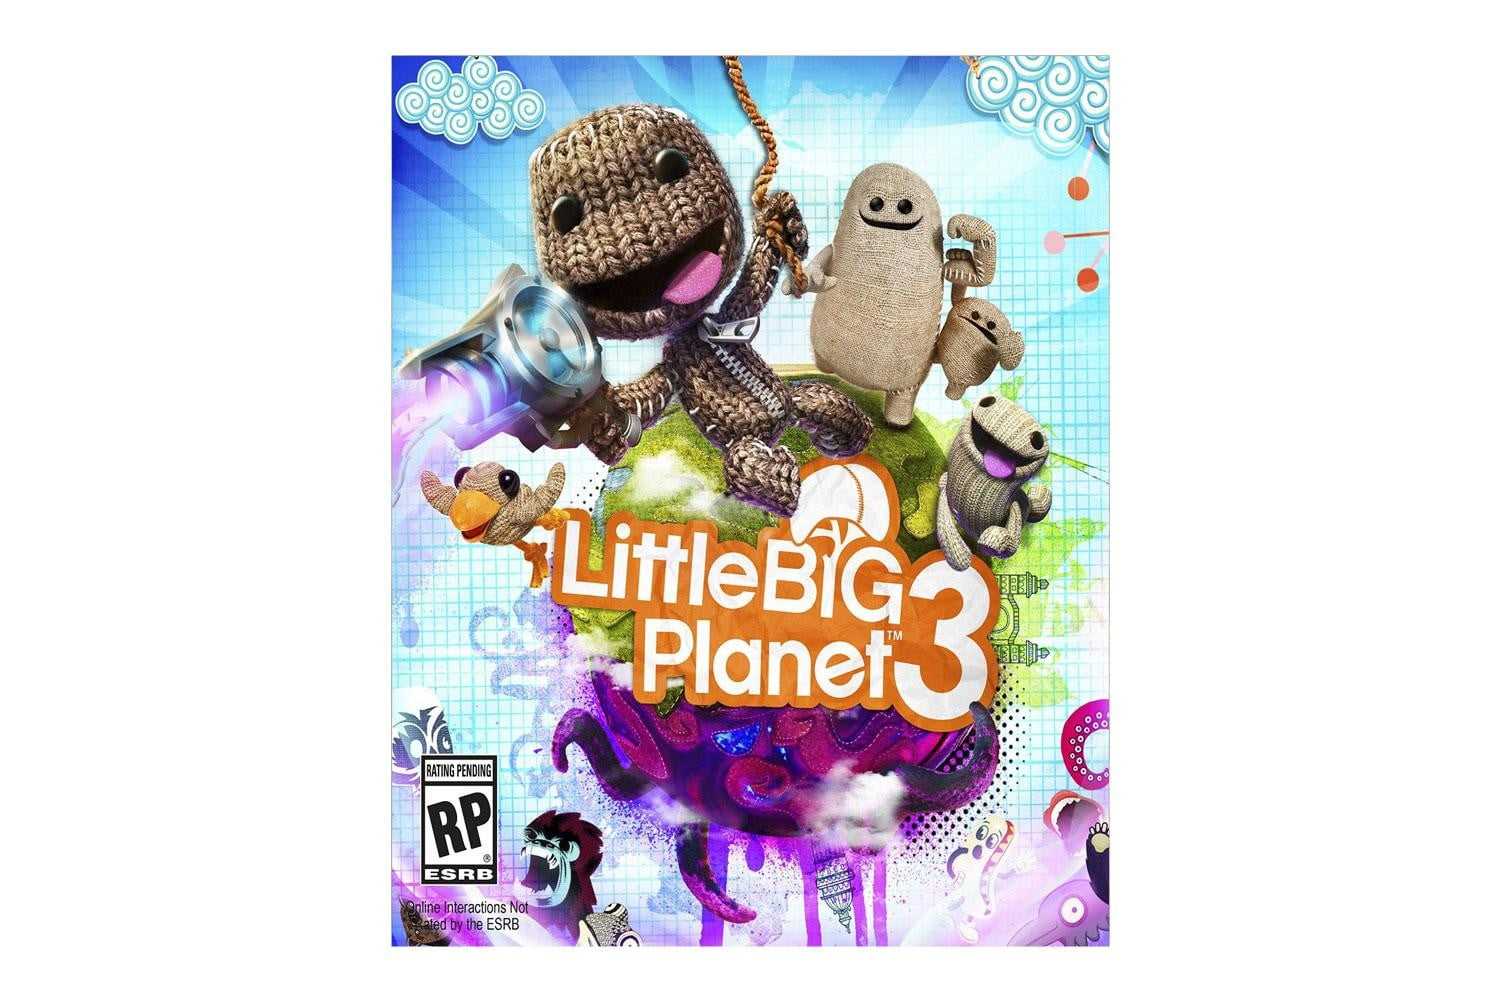 Little-Big-Planet-3-cover-art